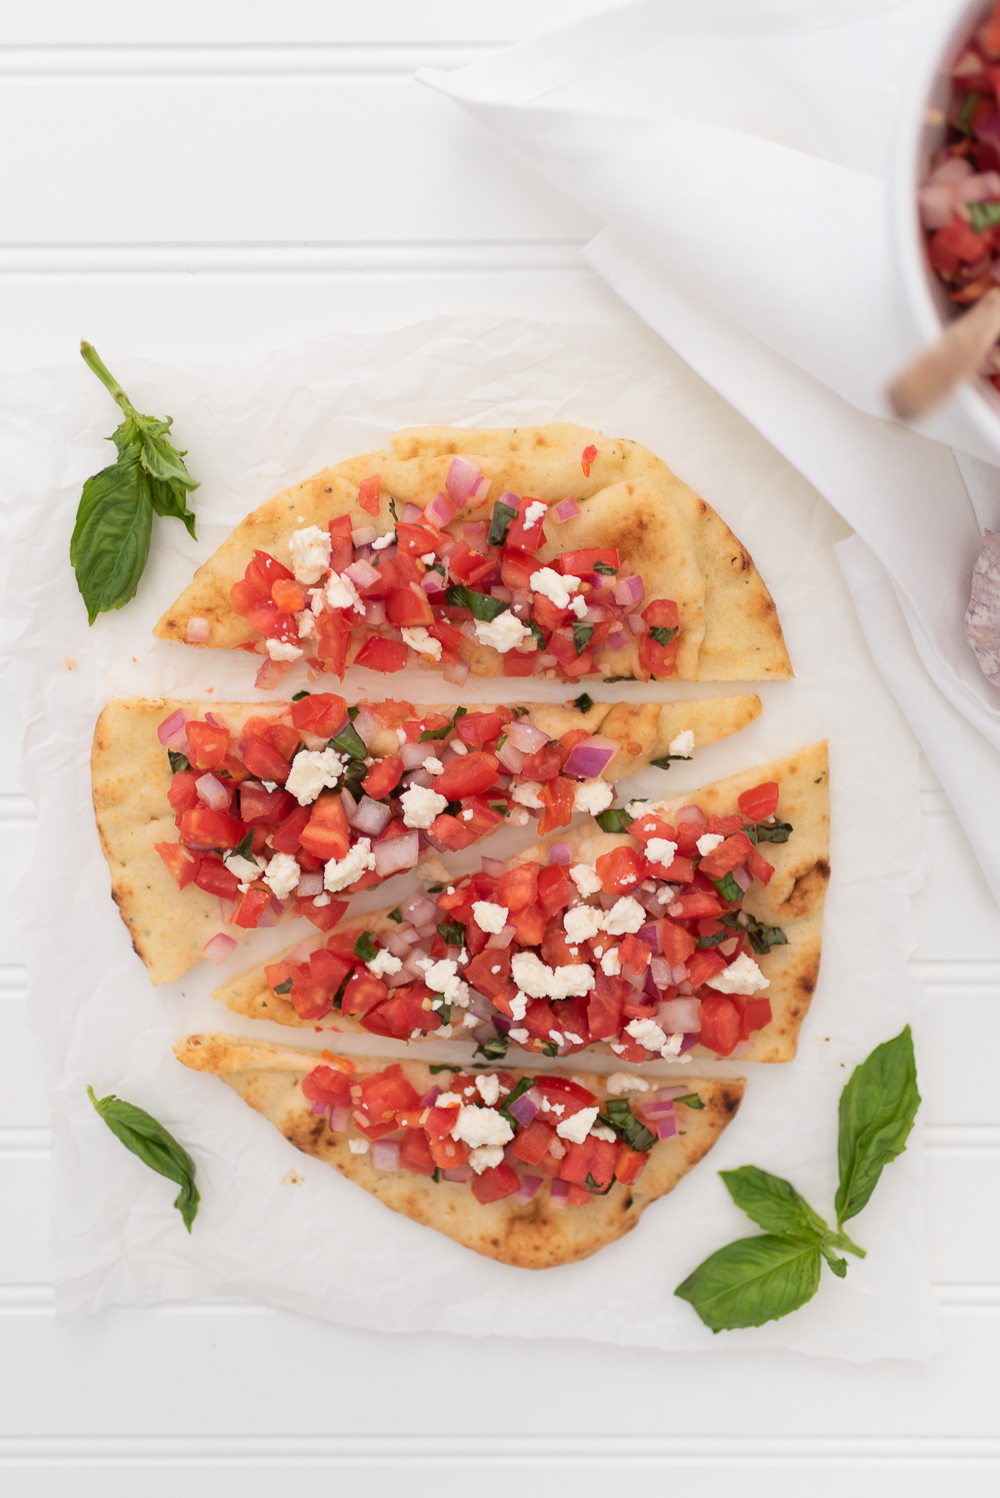 Simple and Fresh Basil Tomato & Feta Bruschetta Flatbread